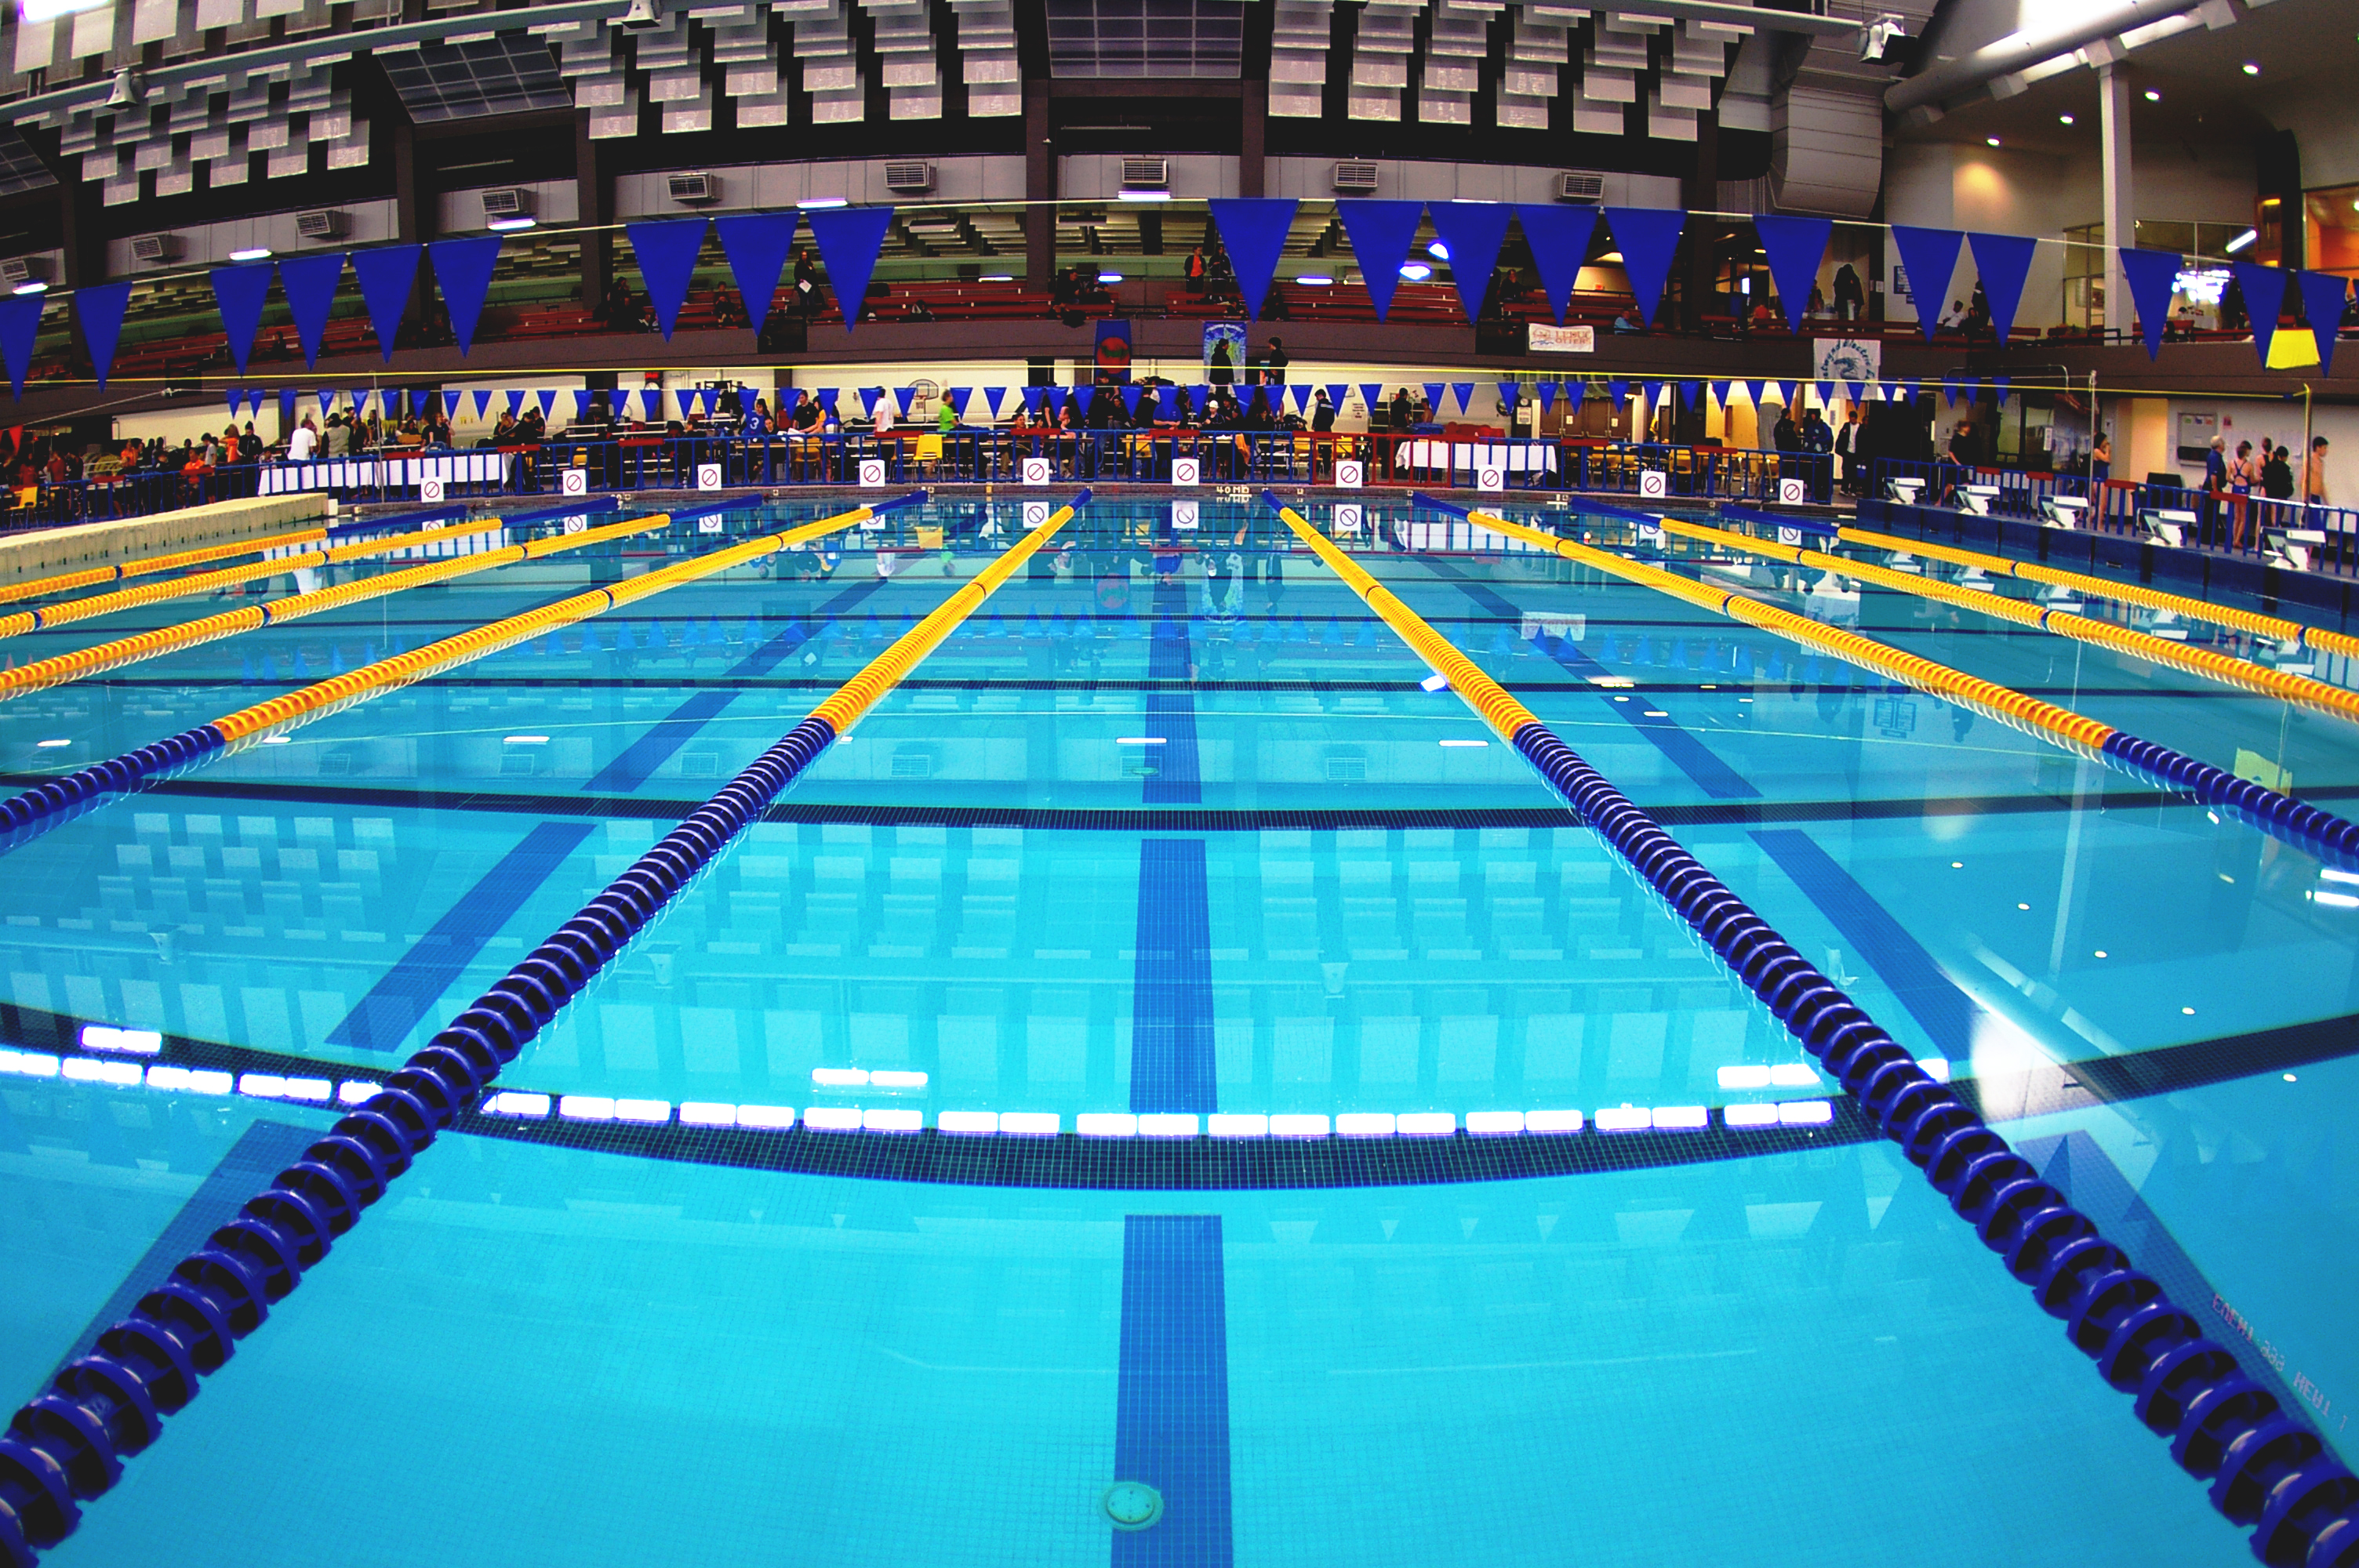 plain olympic swimming pool background underwater h - Olympic Swimming Pool Underwater